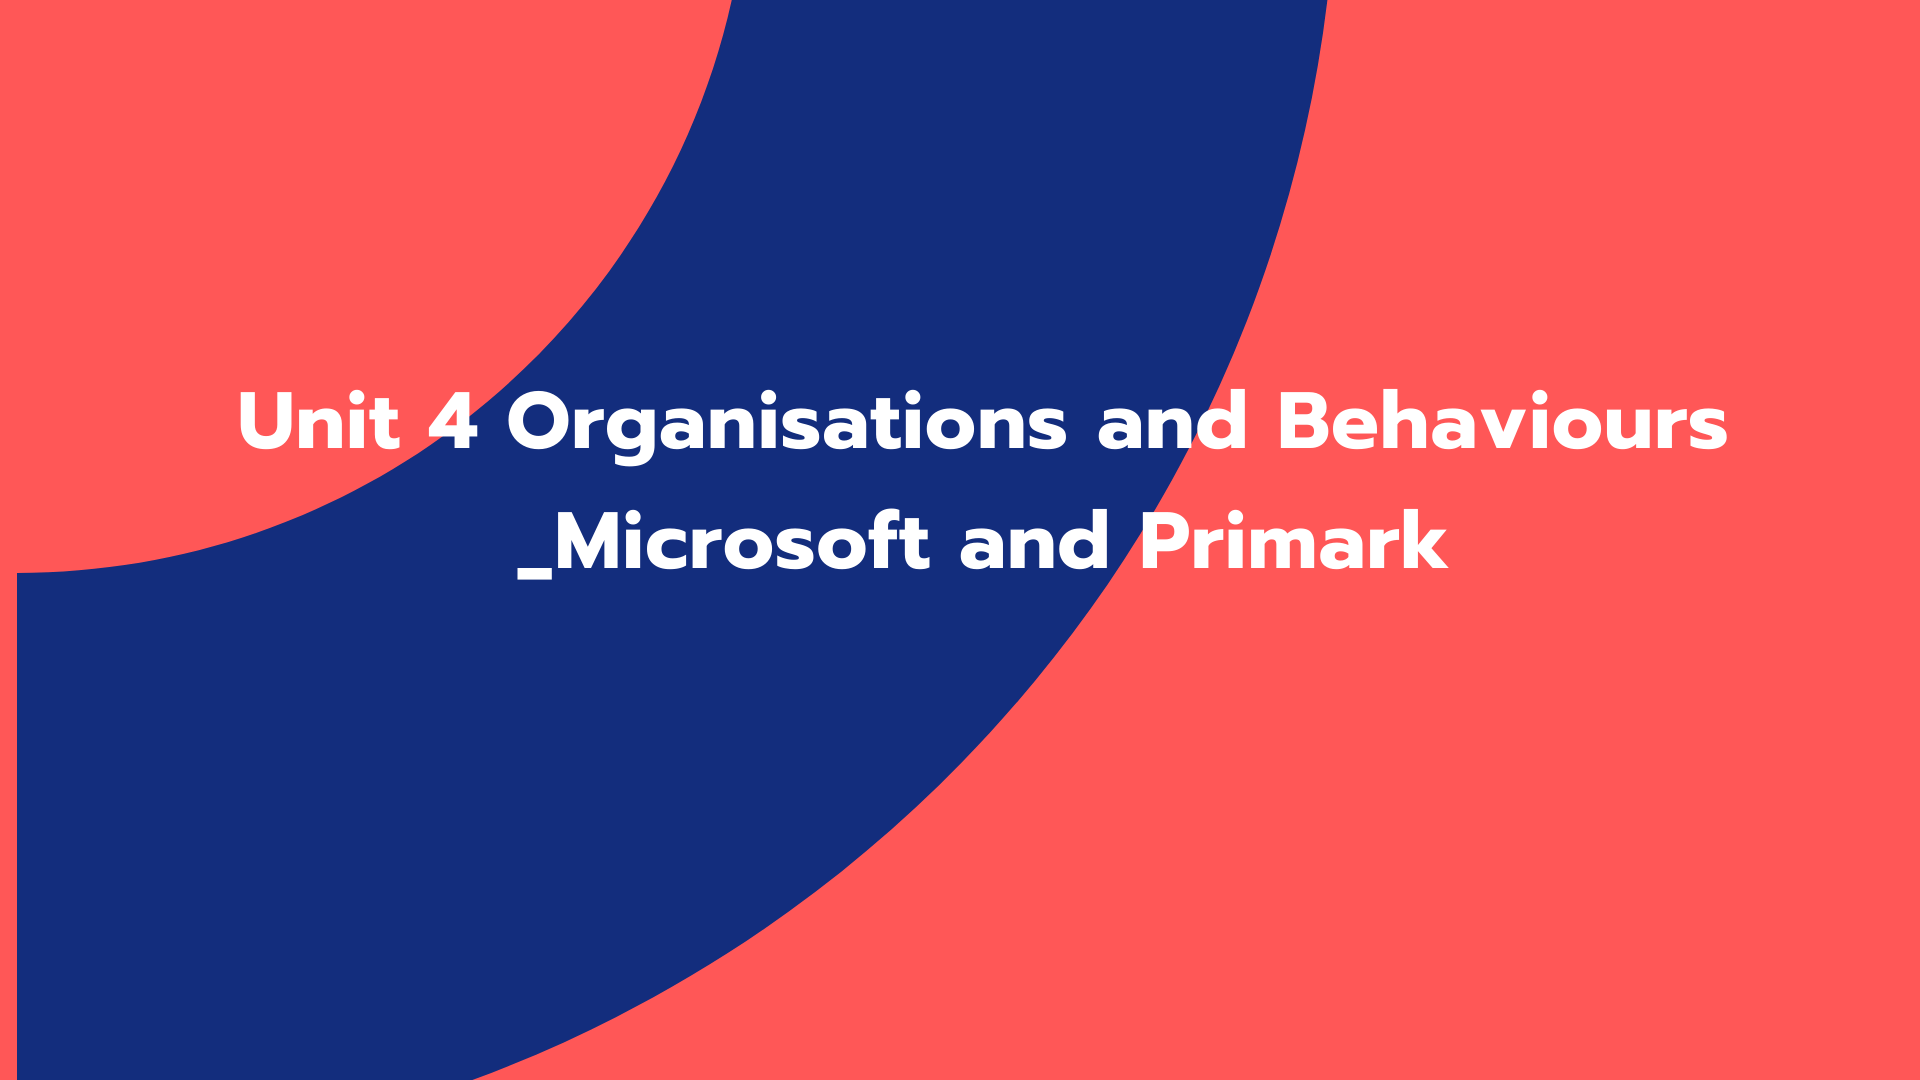 Unit 4 Organisations and Behaviours _Microsoft and Primark